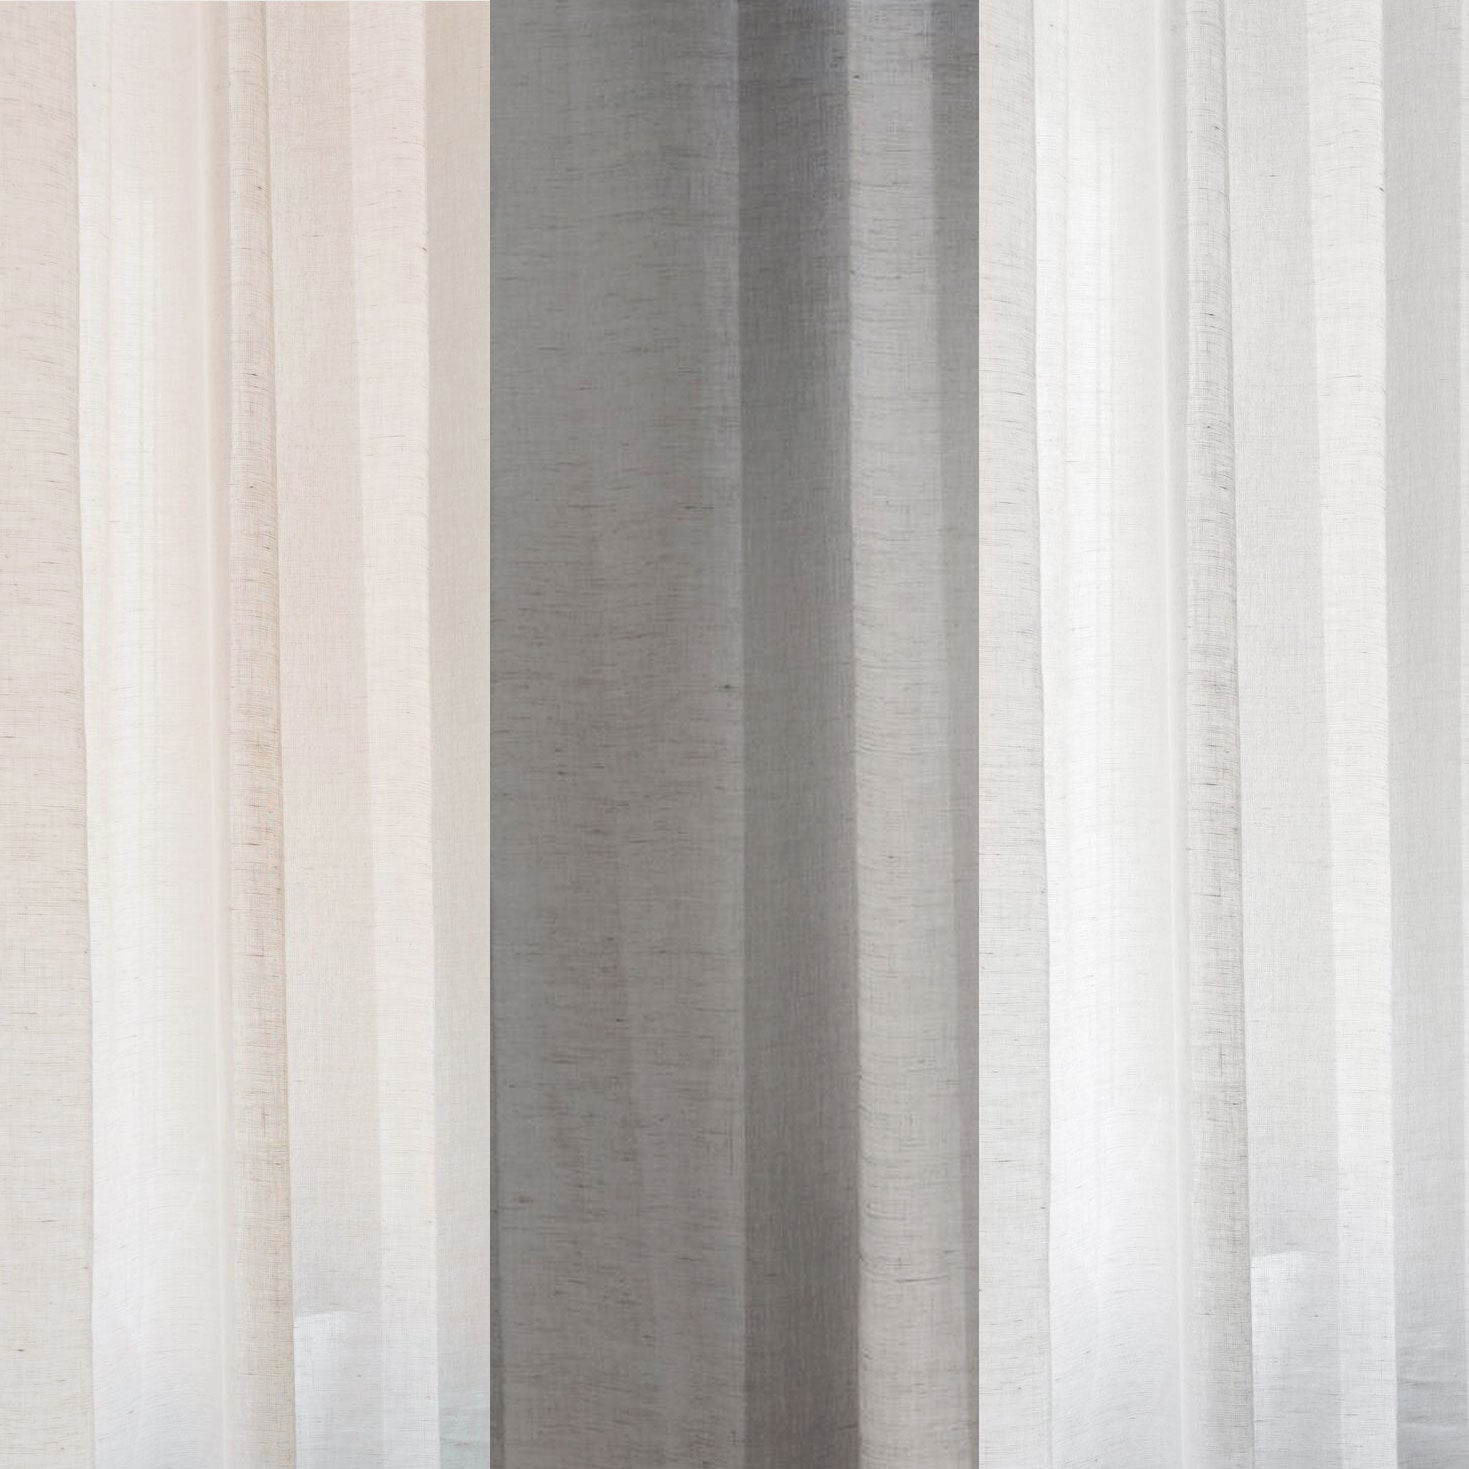 Curtain sheer linen fabric sample – White